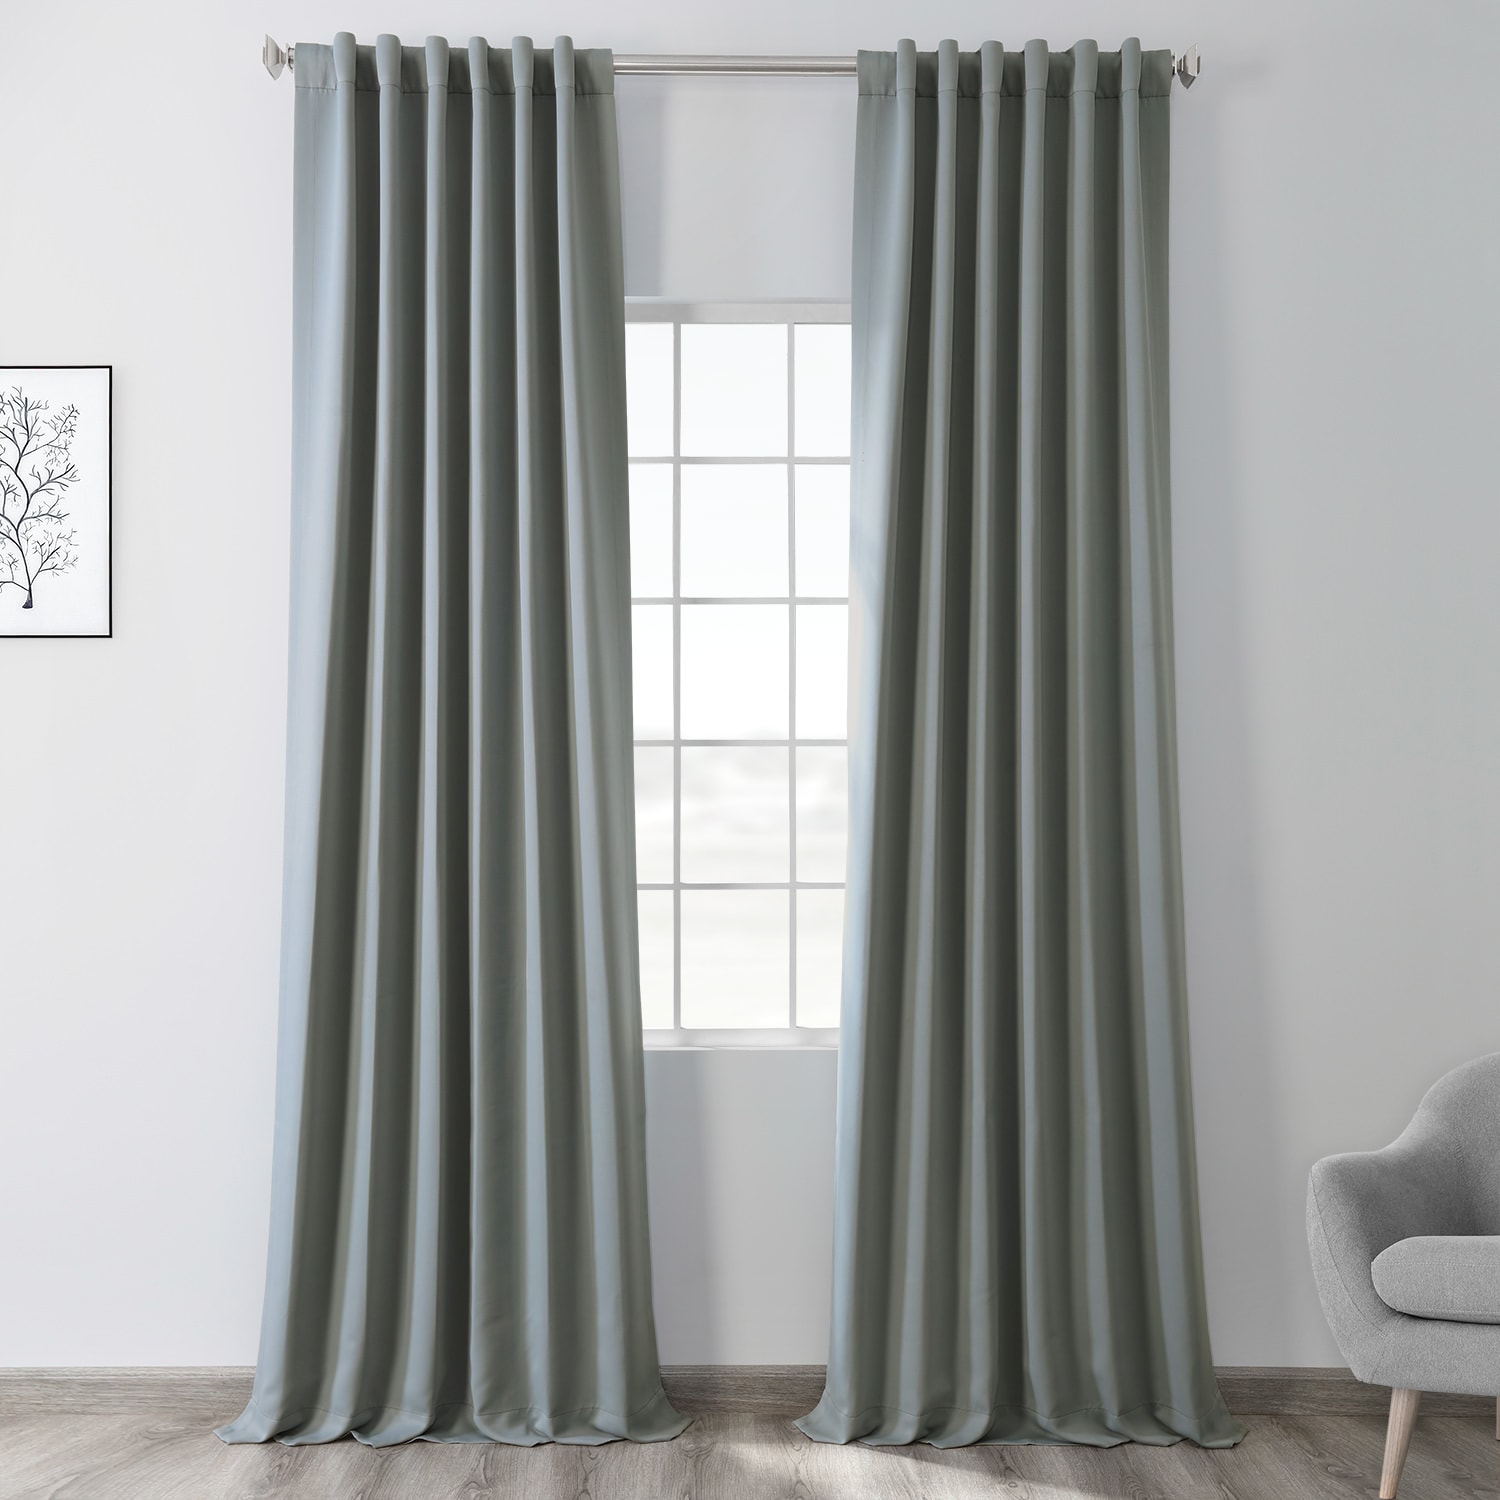 Blue Fir Blackout Room Darkening Curtain